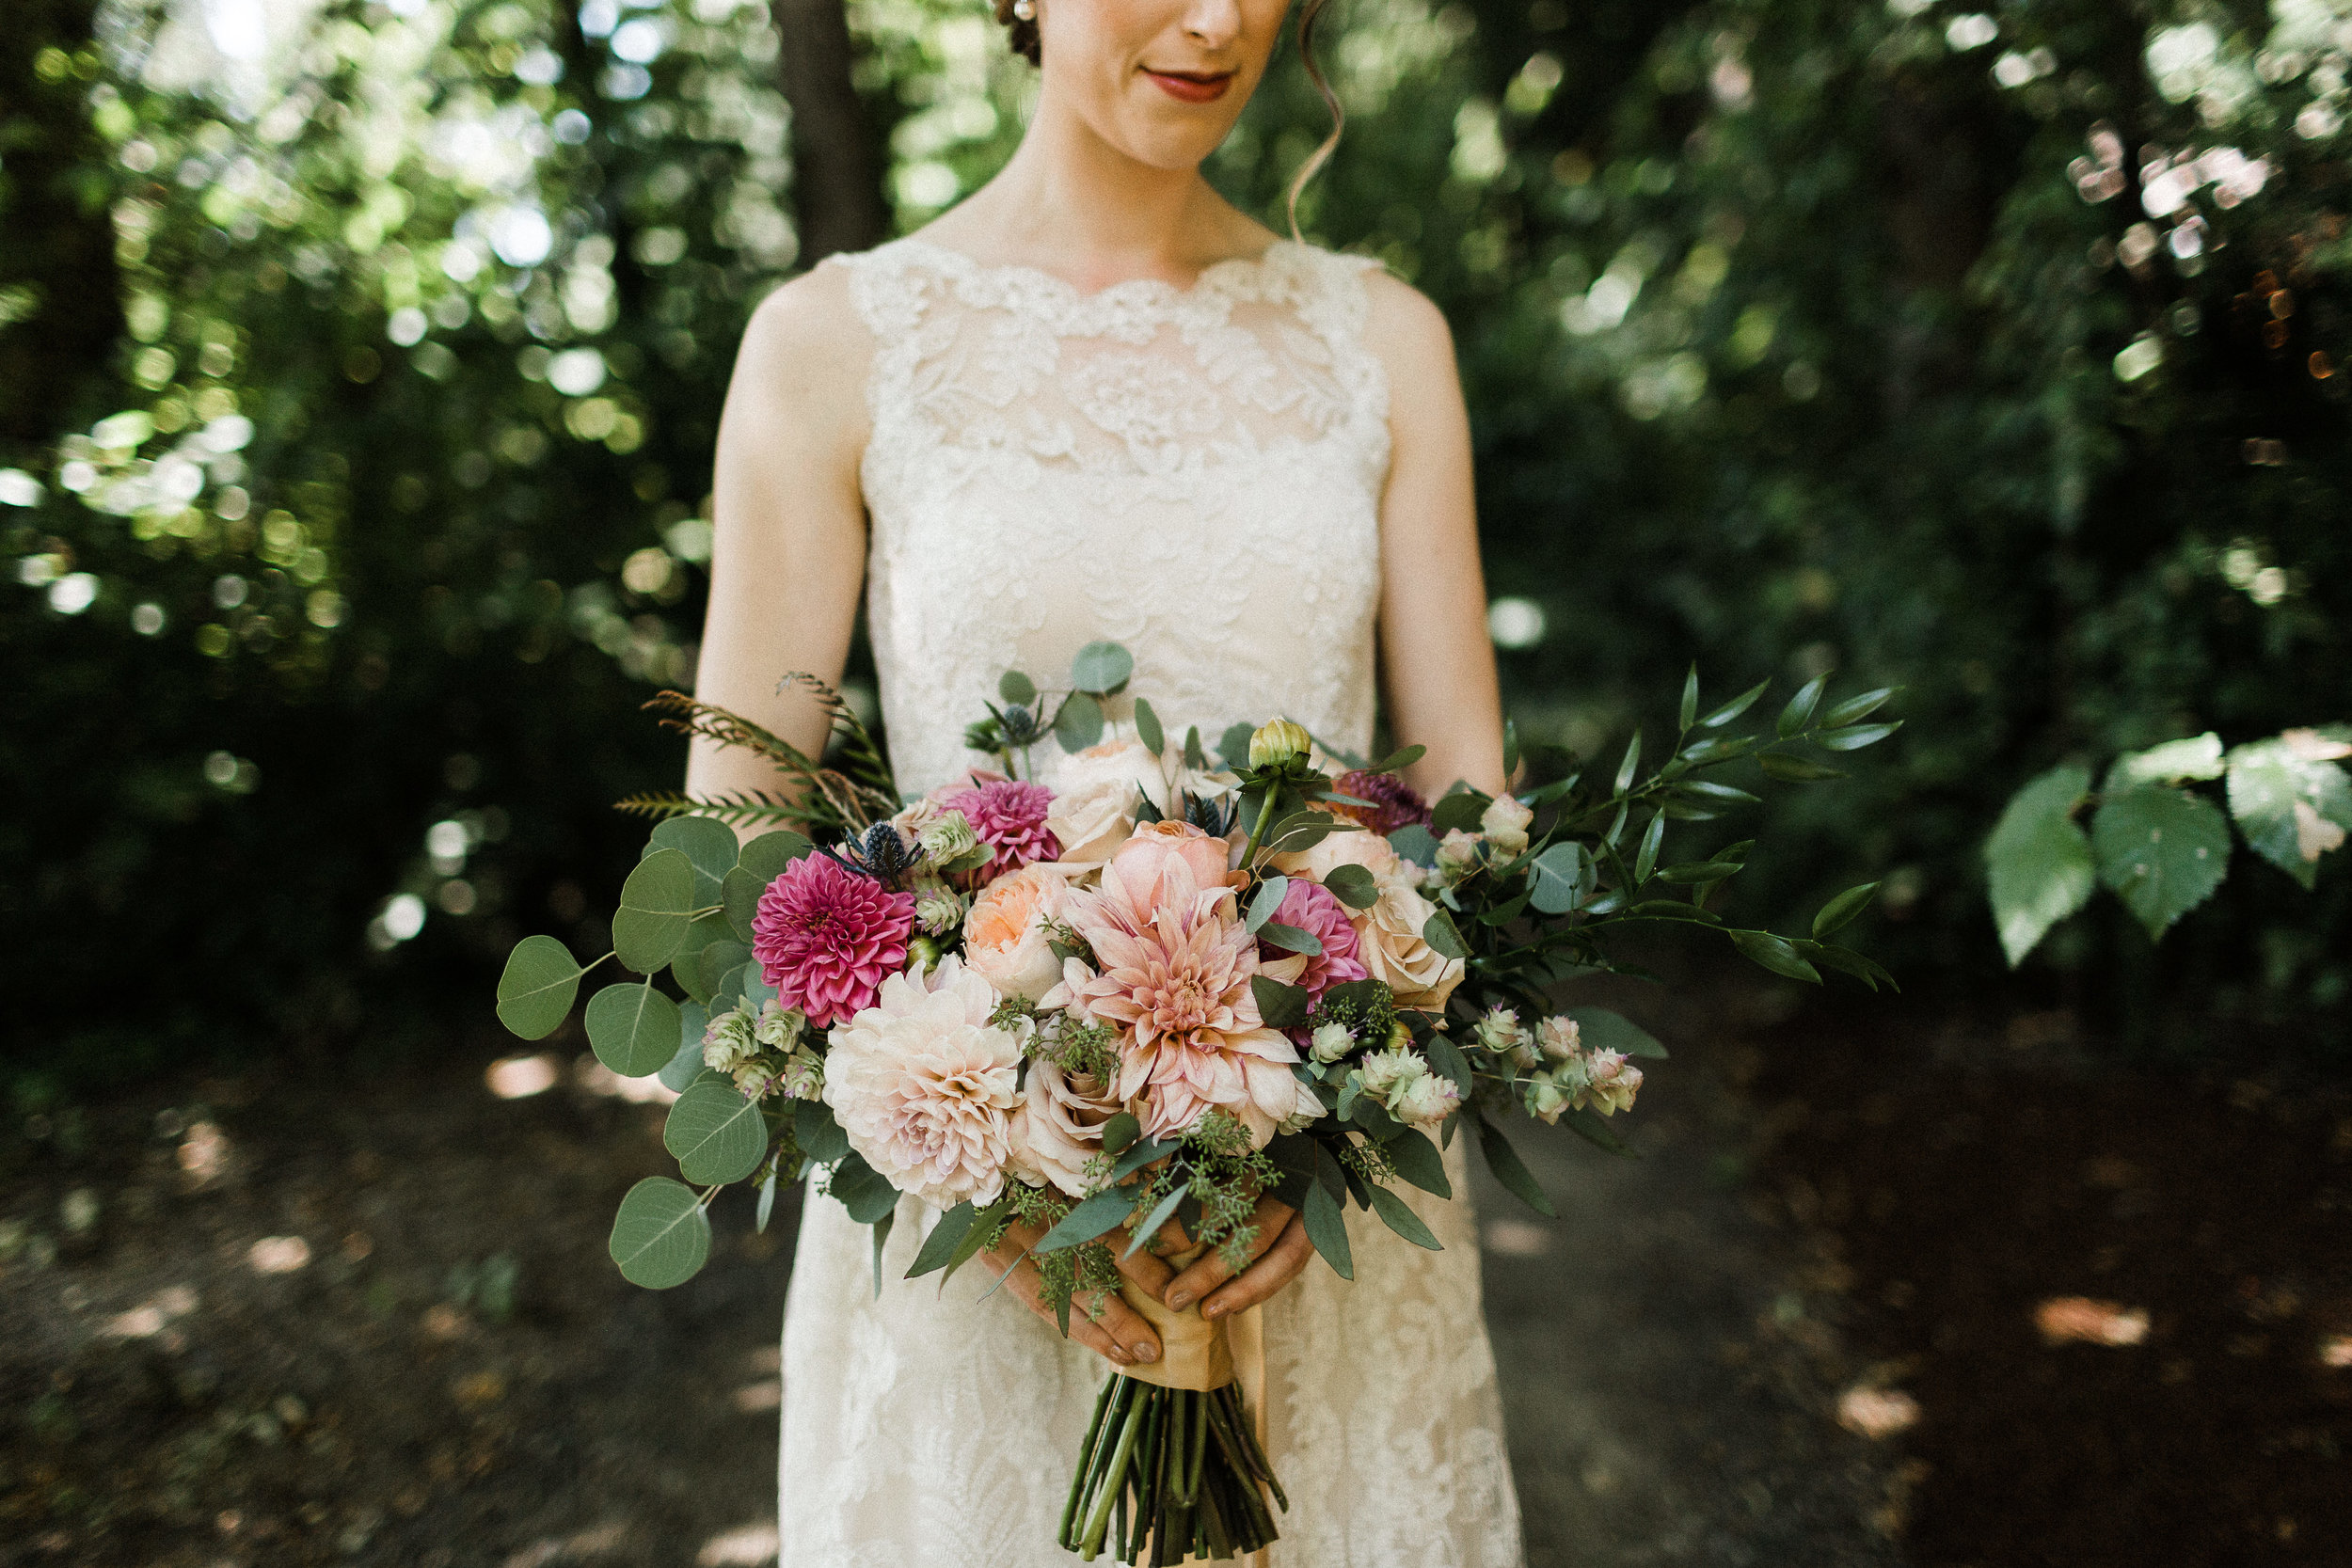 Bridalbliss.com | Portland Wedding | Oregon Event Planning and Design | Gallivan Photo